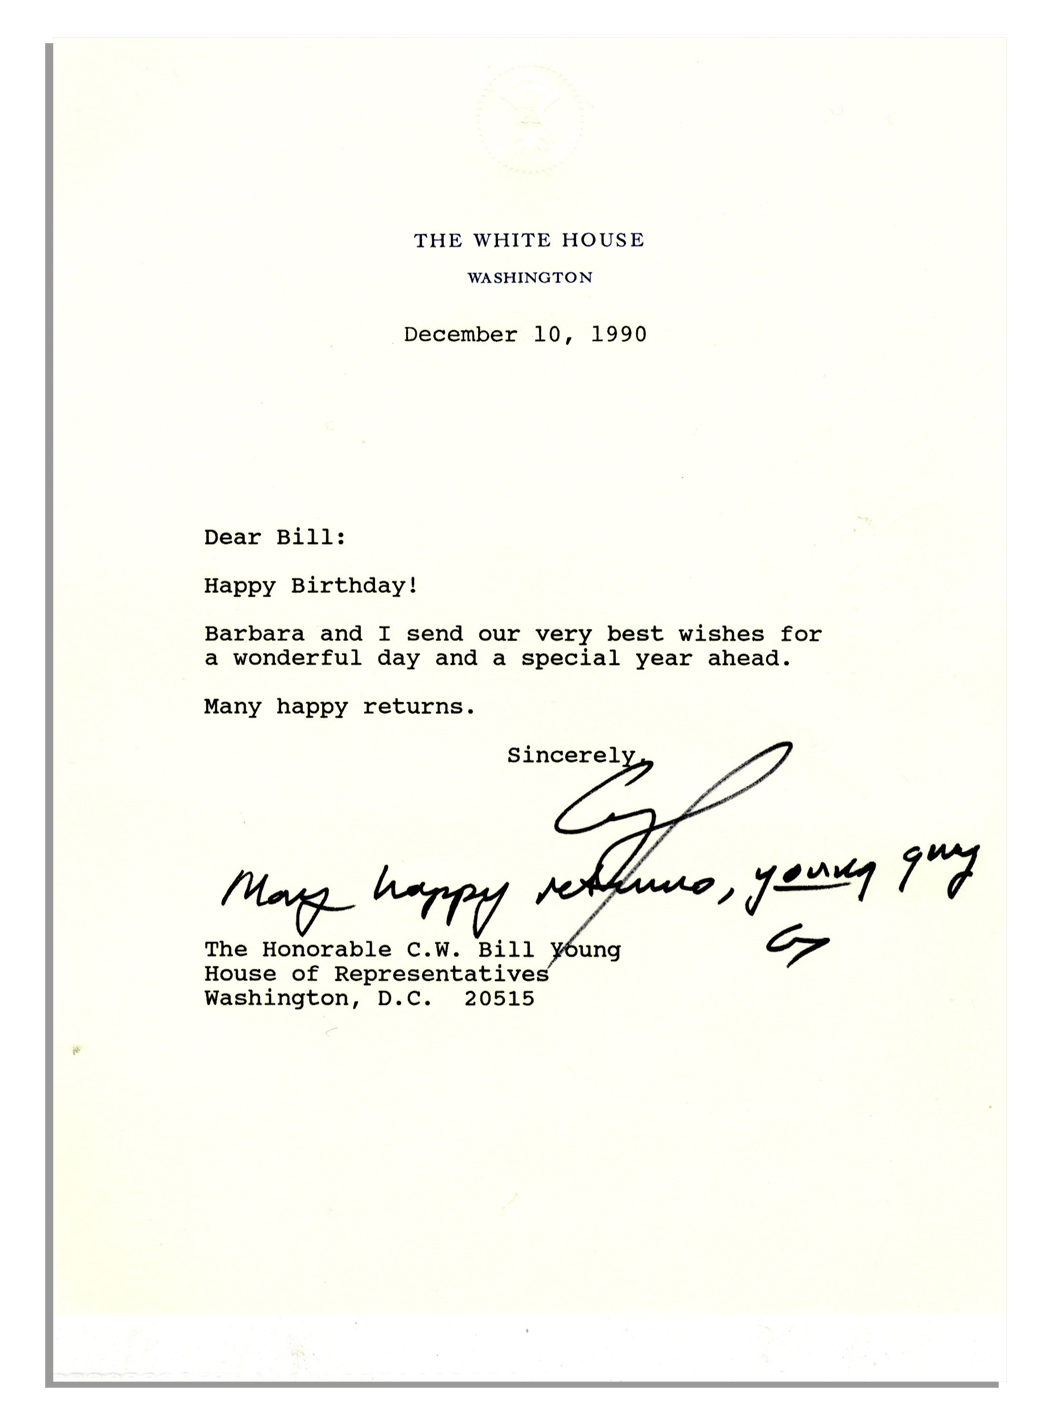 as president george hw bush sends birthday wishes via a letter signed with an additional